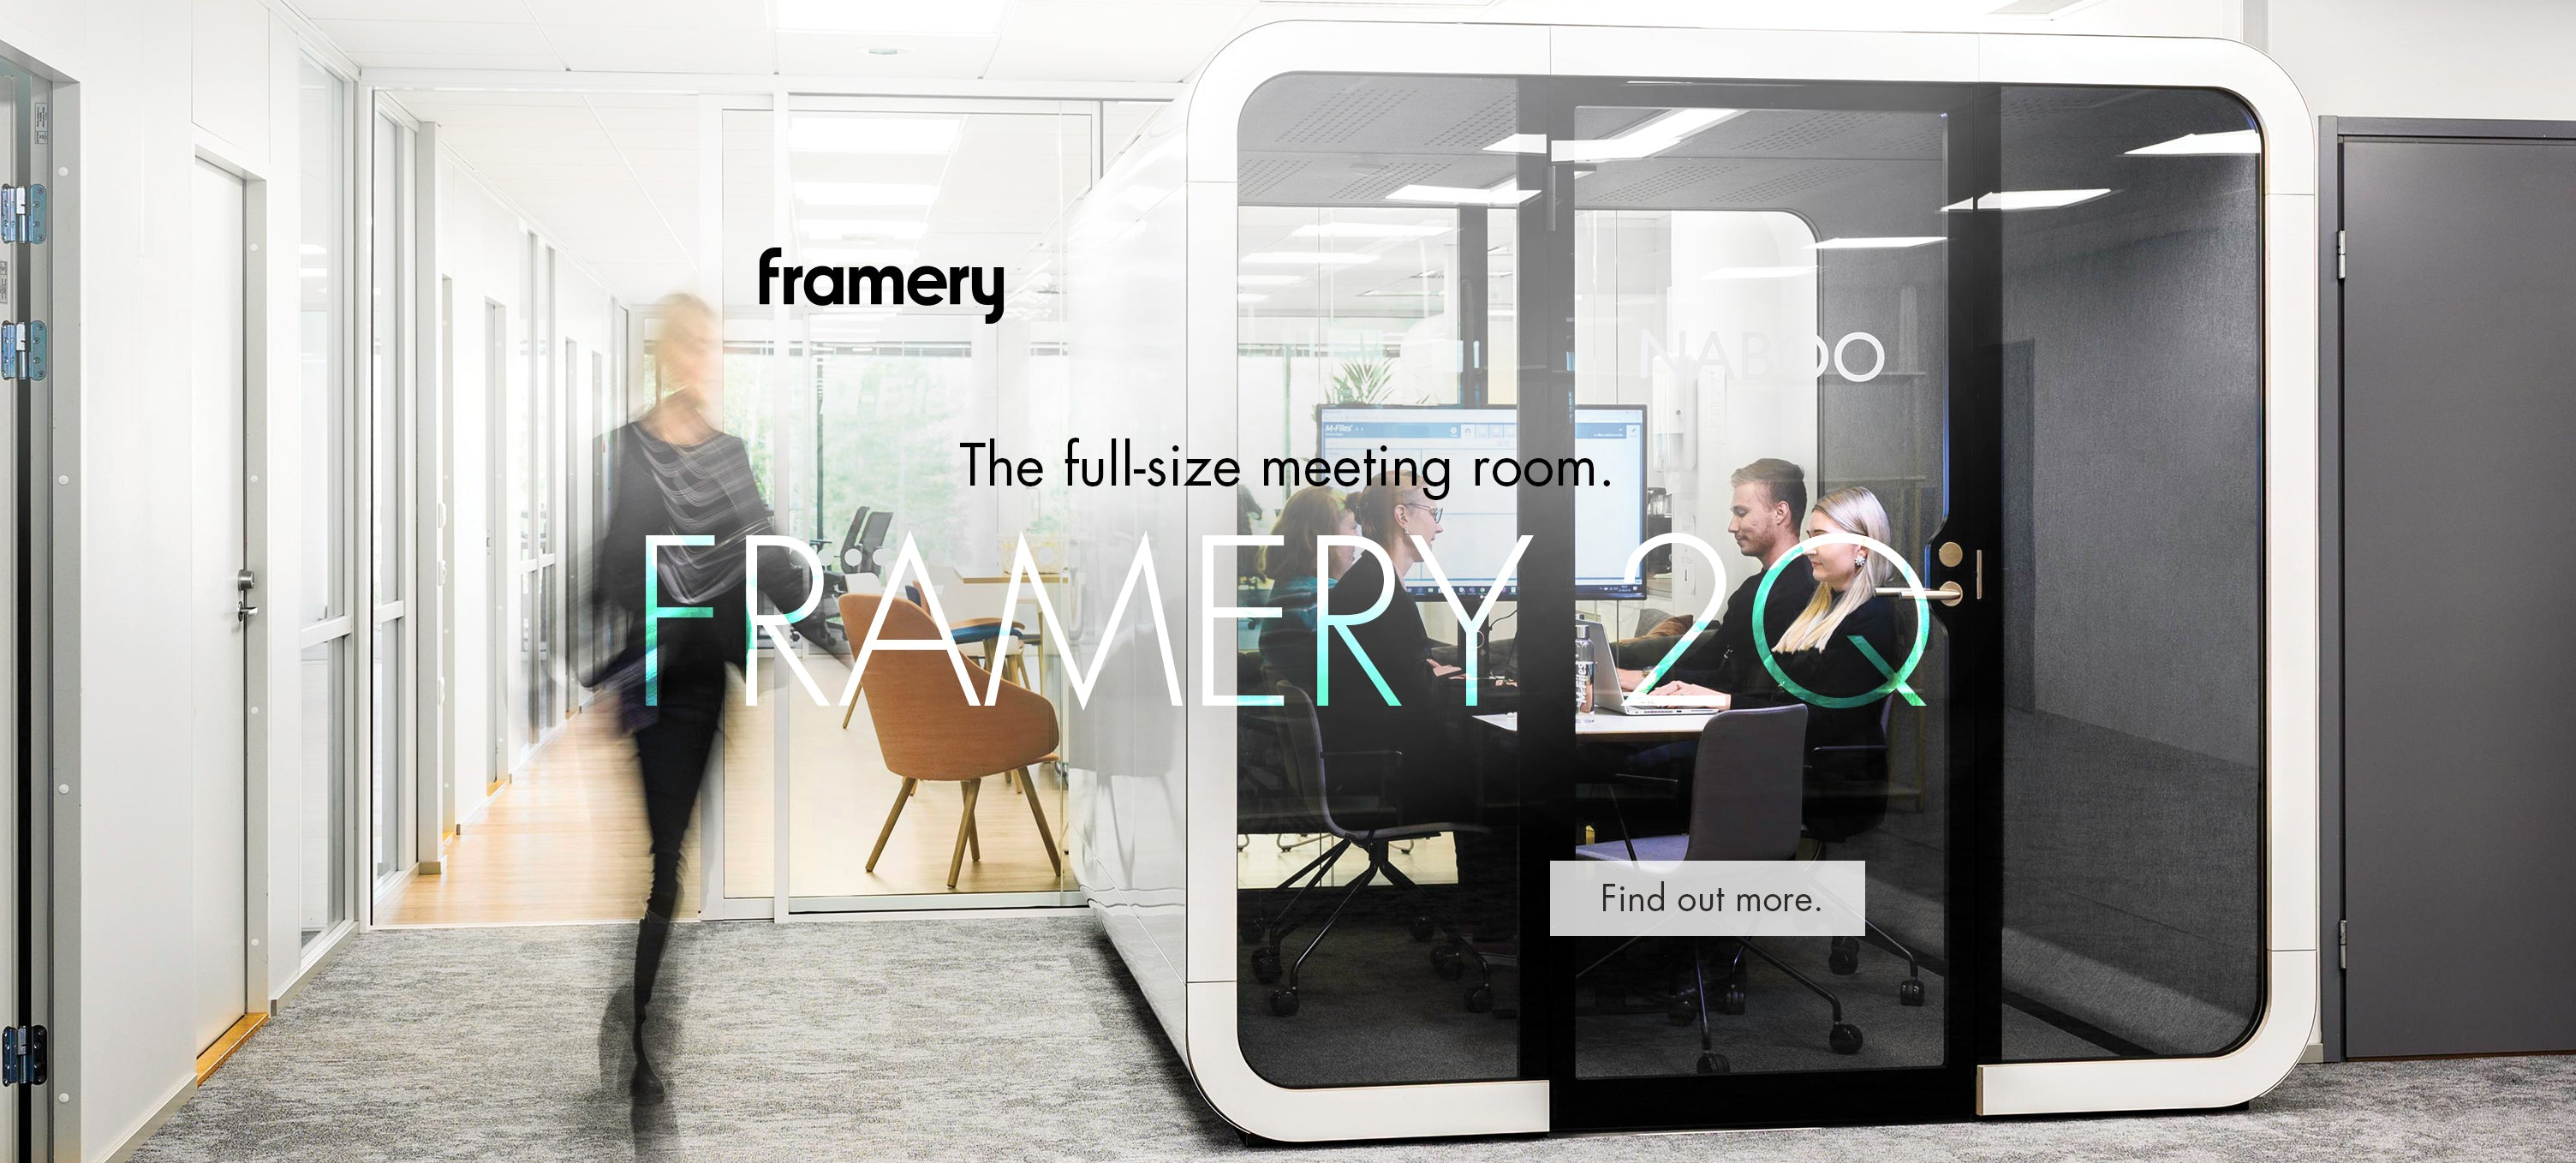 Framery 2Q acoustic meeting pod